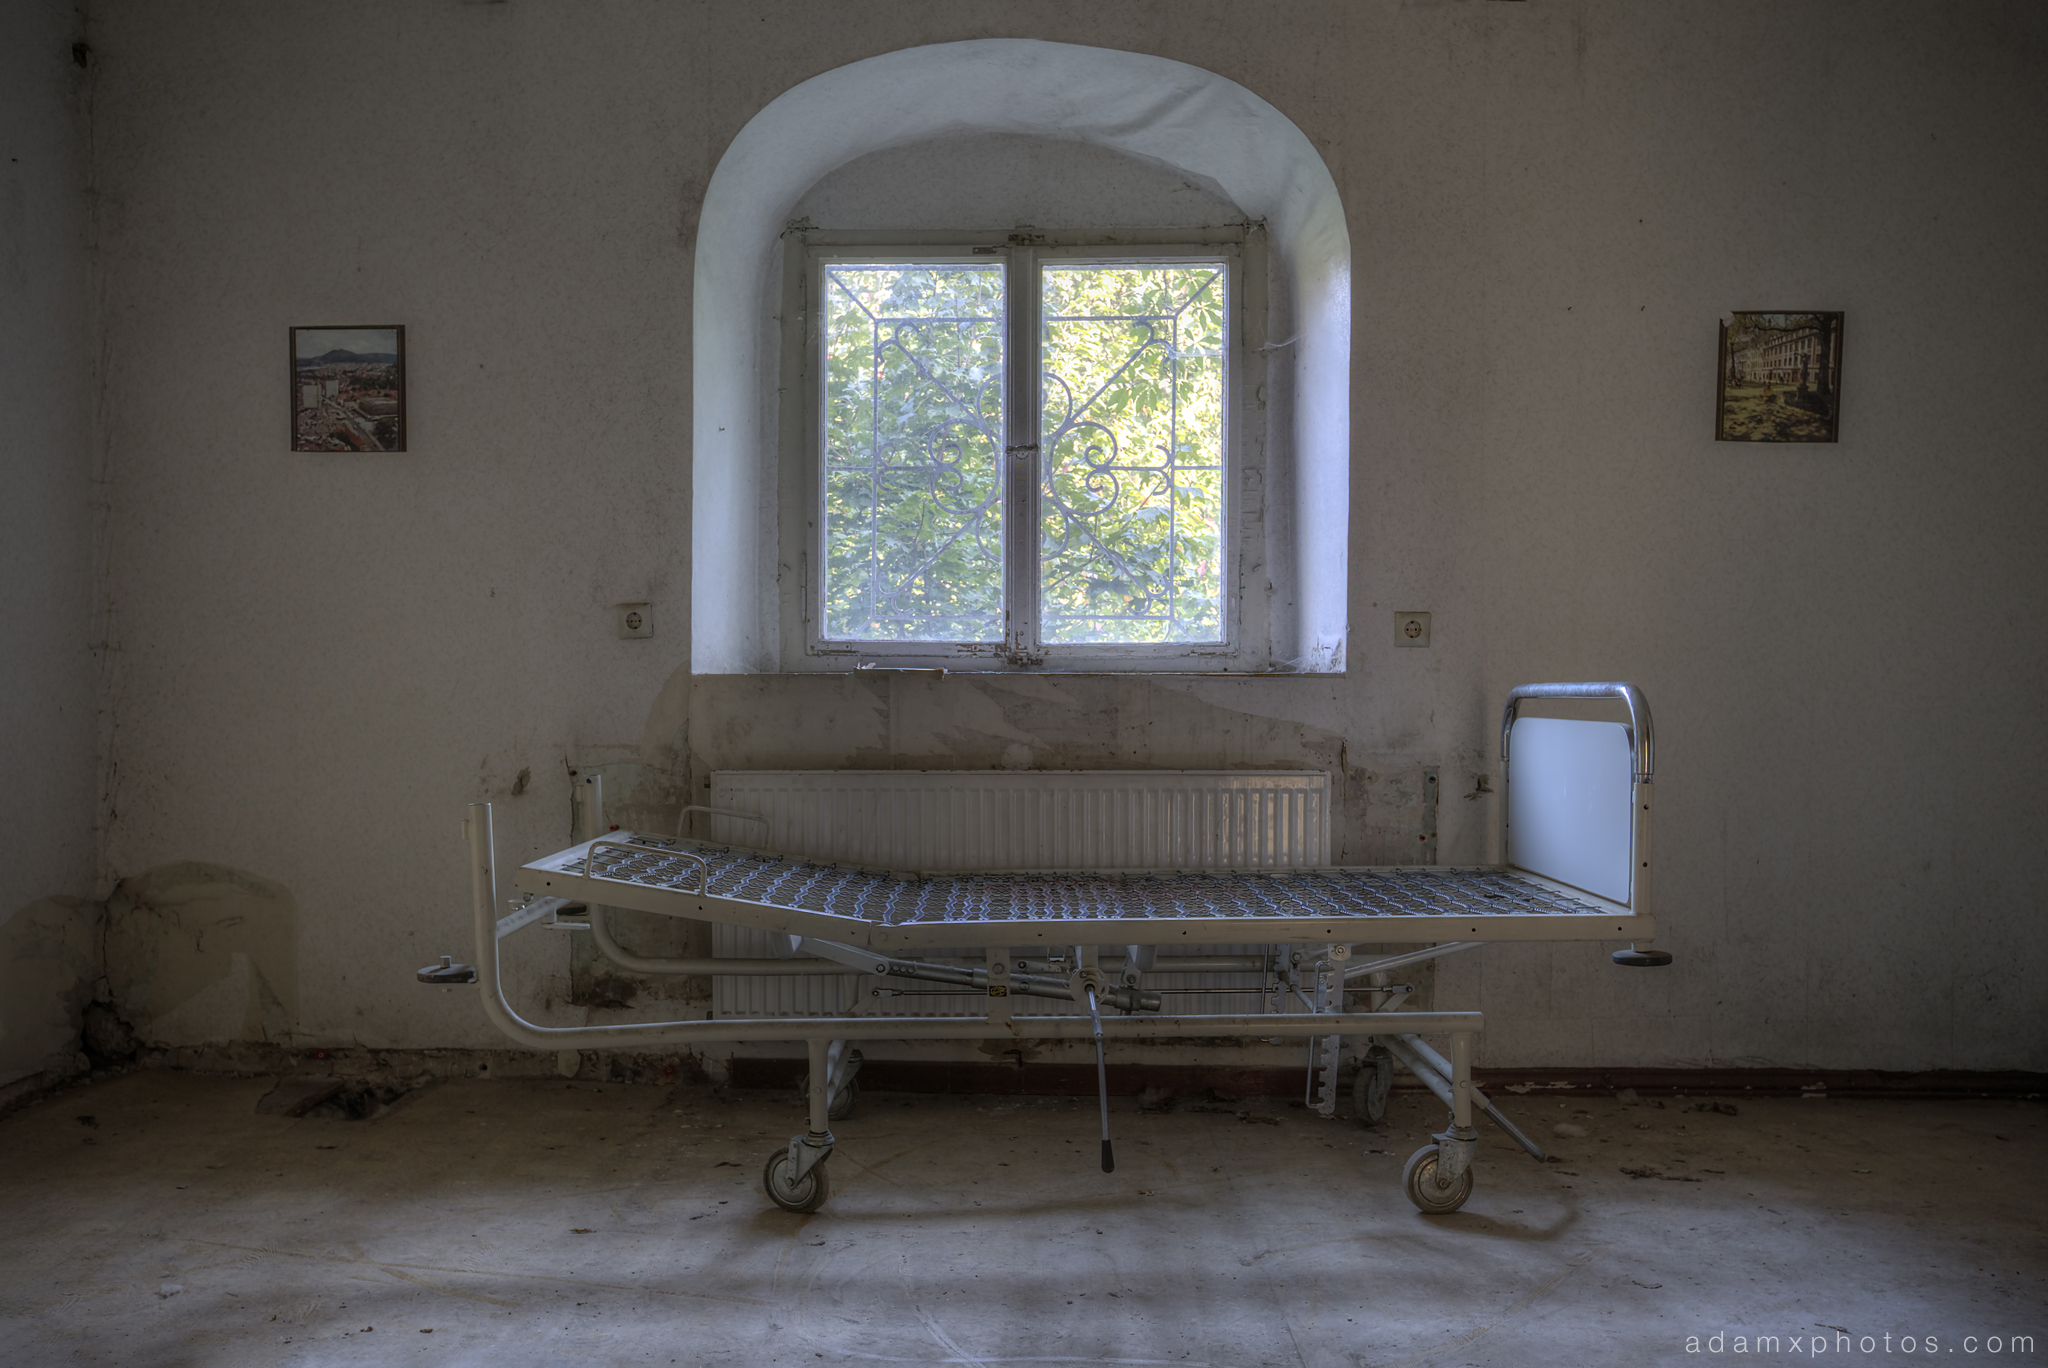 Adam X Urbex Krankenhaus von rollstuhlen Hospital of wheelchairs Germany Urban Exploration Decay Lost Abandoned Hidden Wheelchair bed window